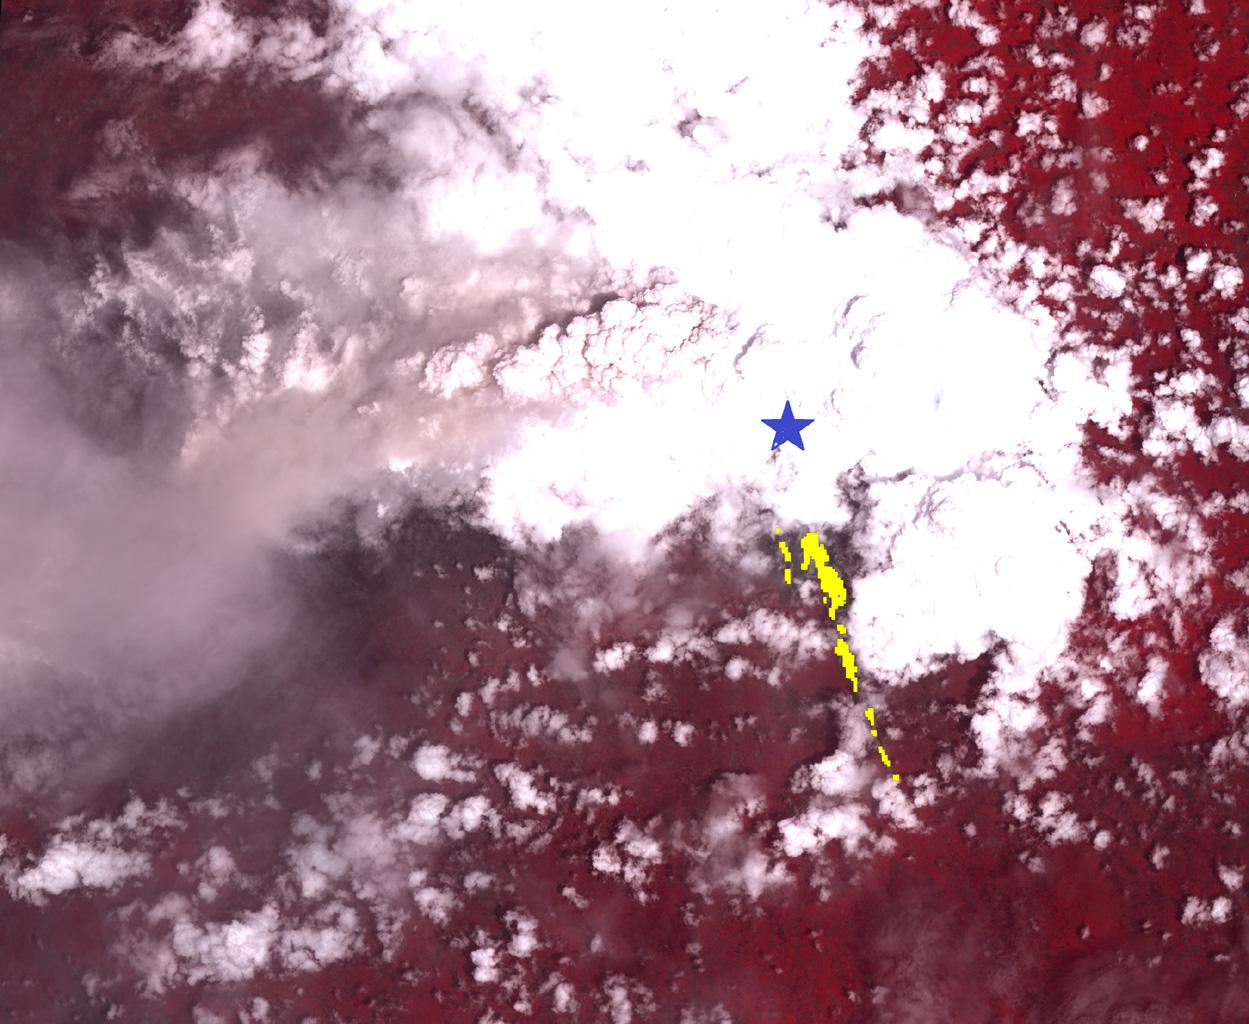 On Nov. 8, 2010, the ASTER instrument onboard NASA's Terra spacecraft captured an image of the hot volcanic flows from Merapi volcano that resulted from continued collapse of the summit lava dome, and the ensuing release of ash plumes.